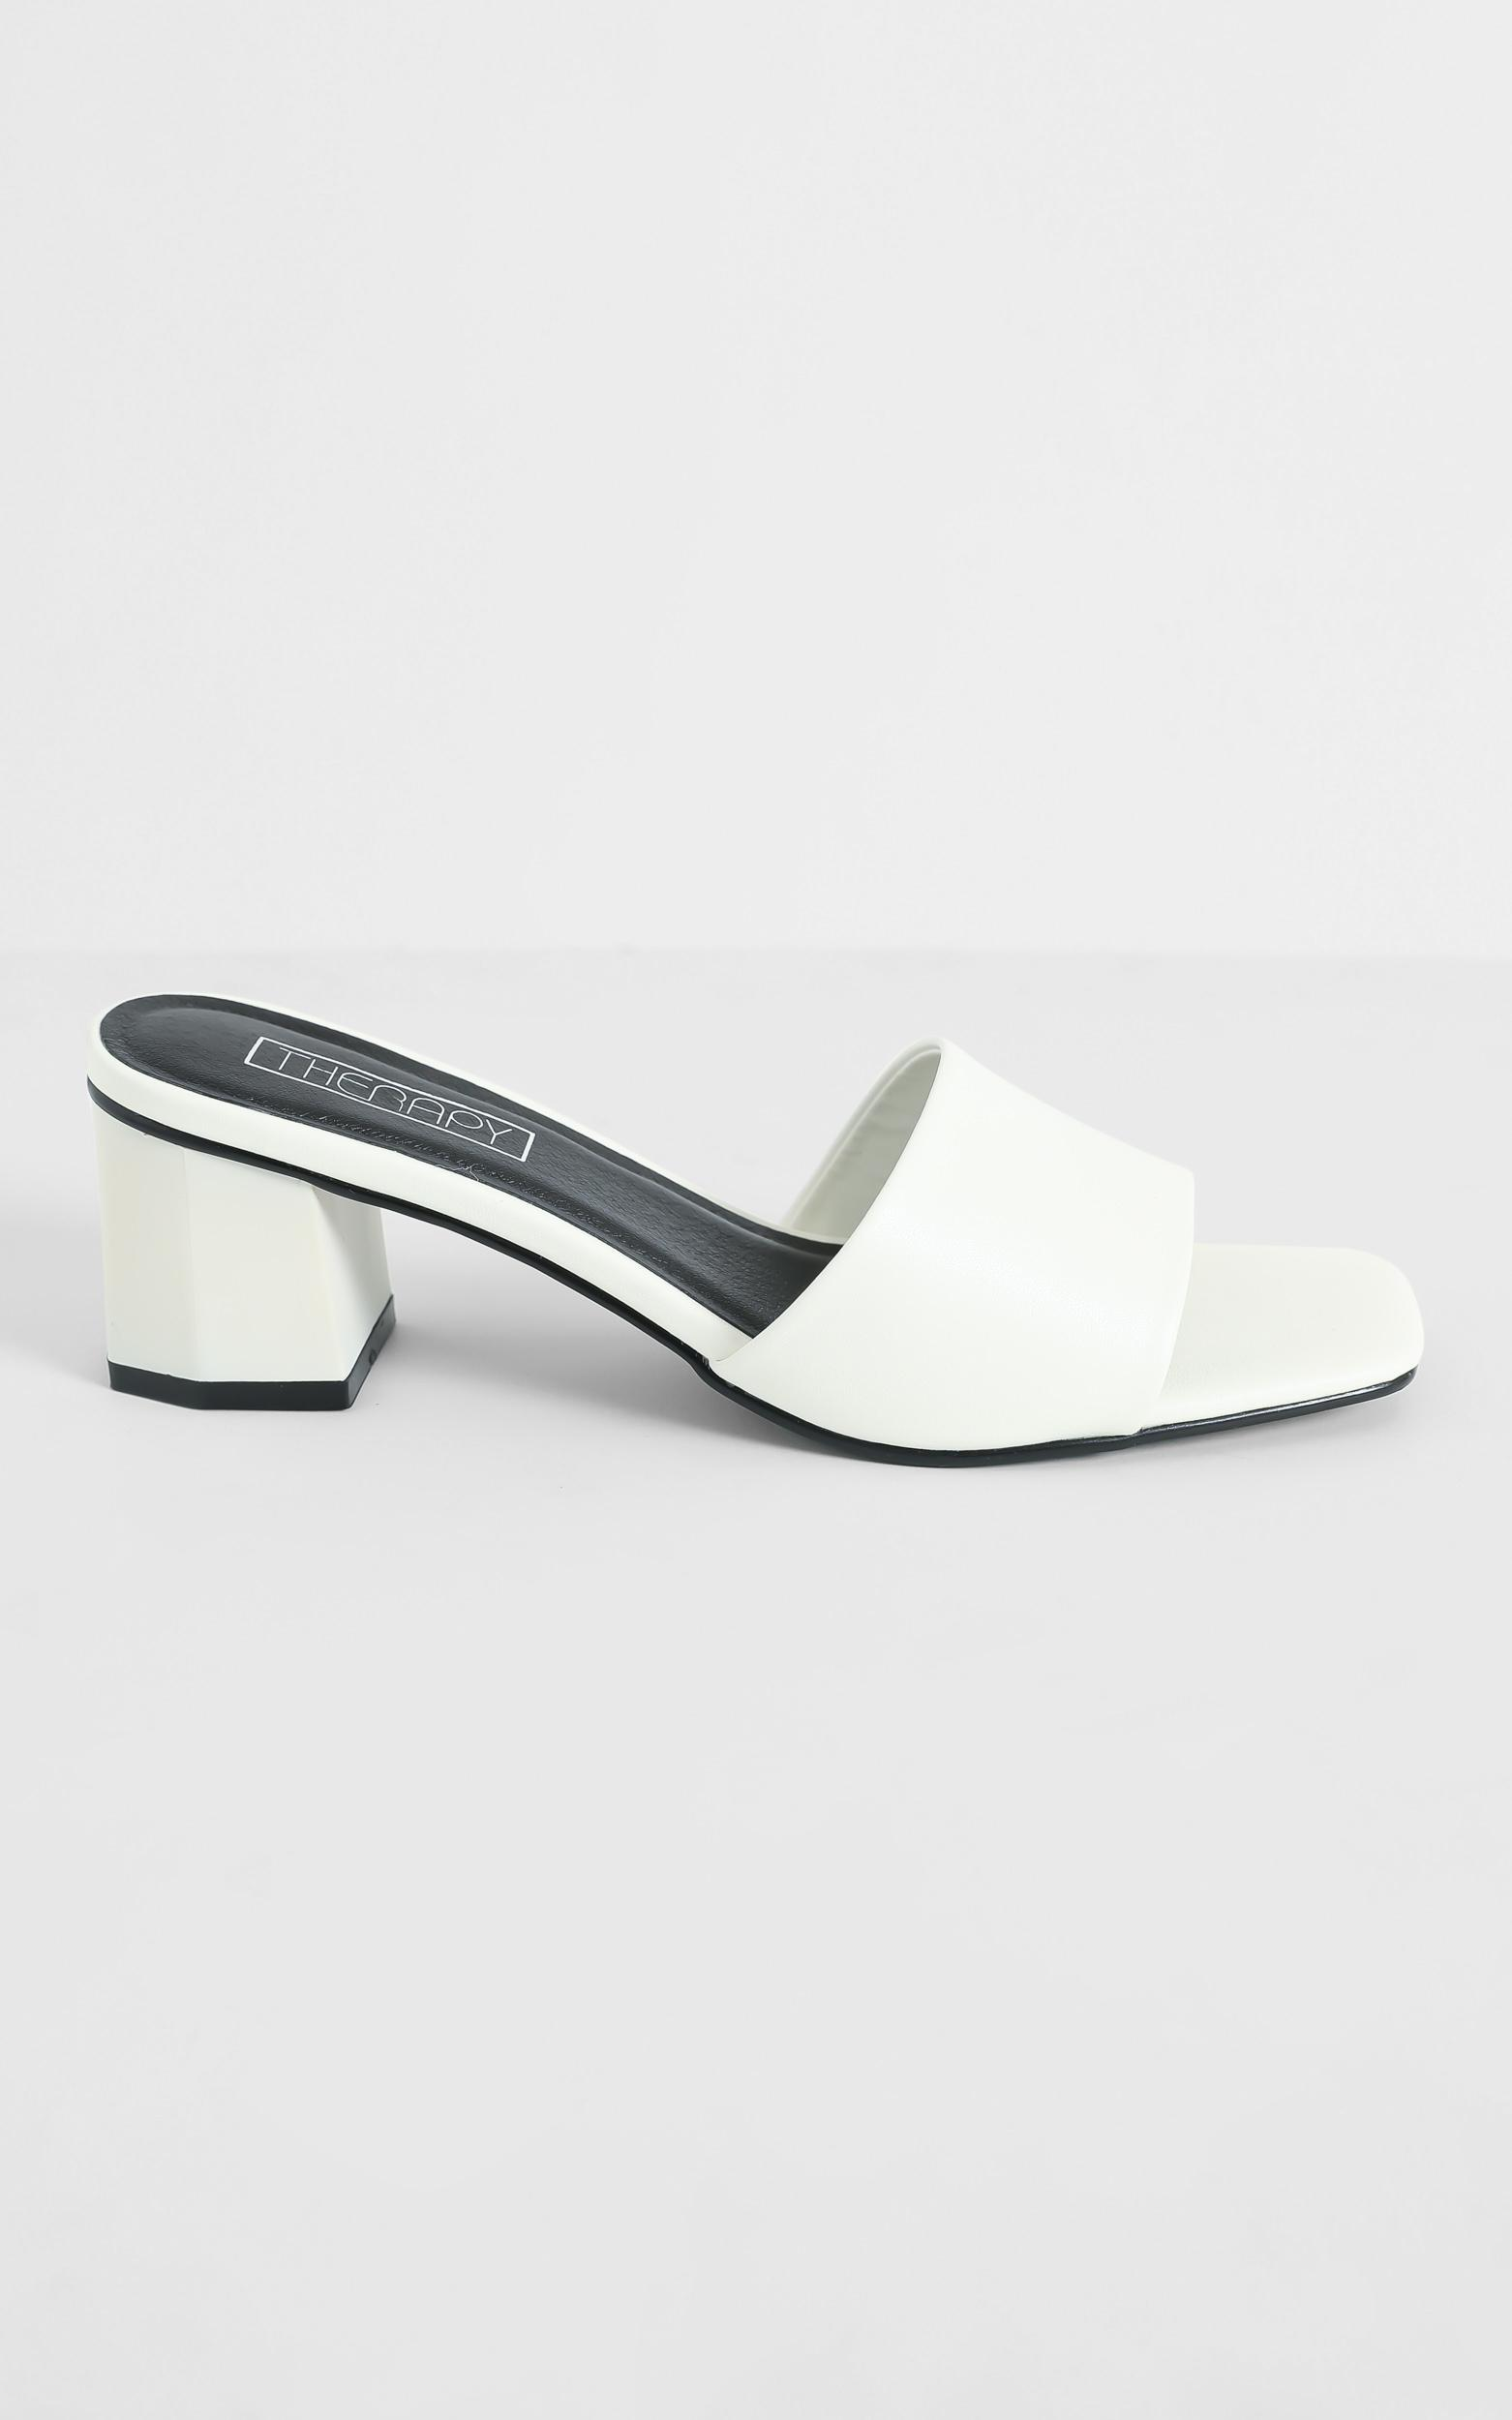 Therapy - Nyla Heels in White - 5, White, hi-res image number null